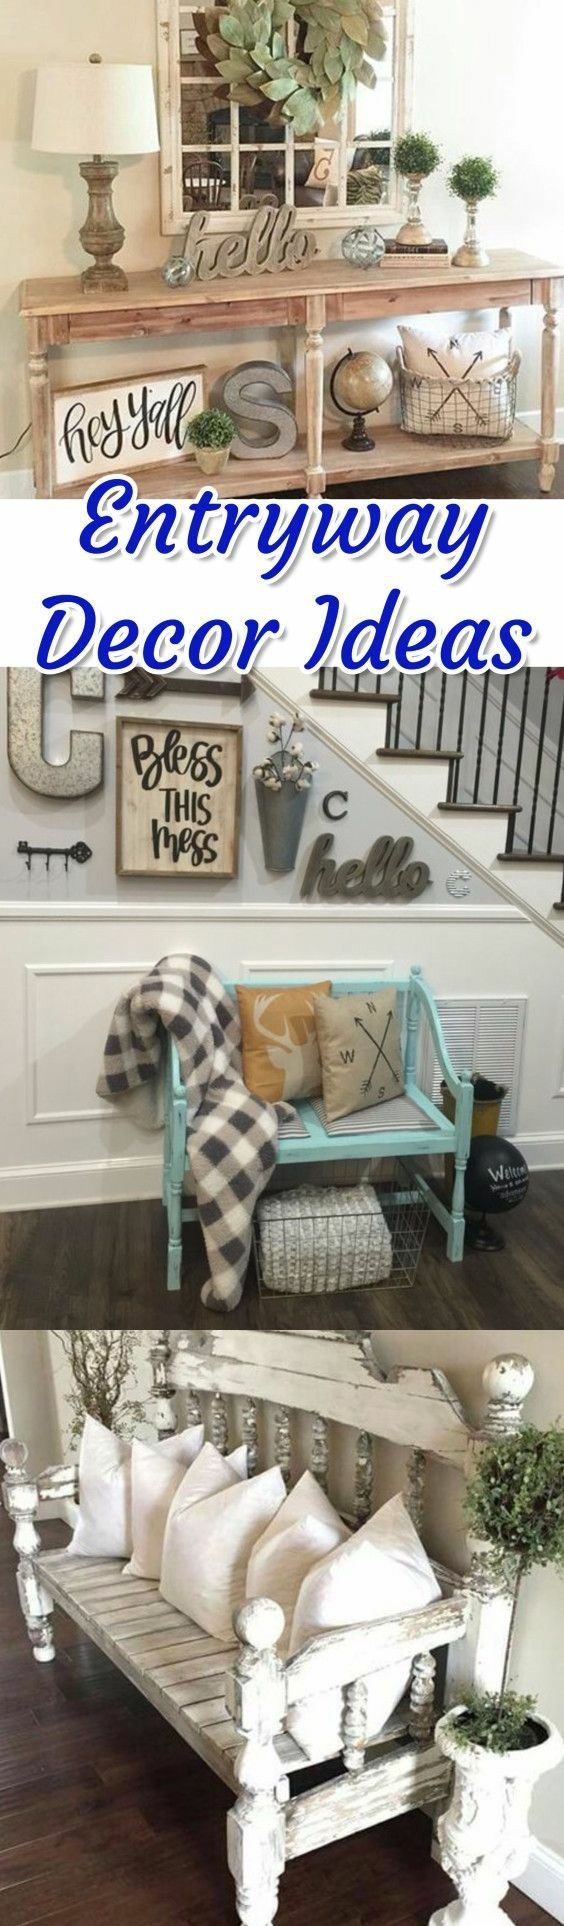 entry way home decor rustic diy decor hello bless this mess